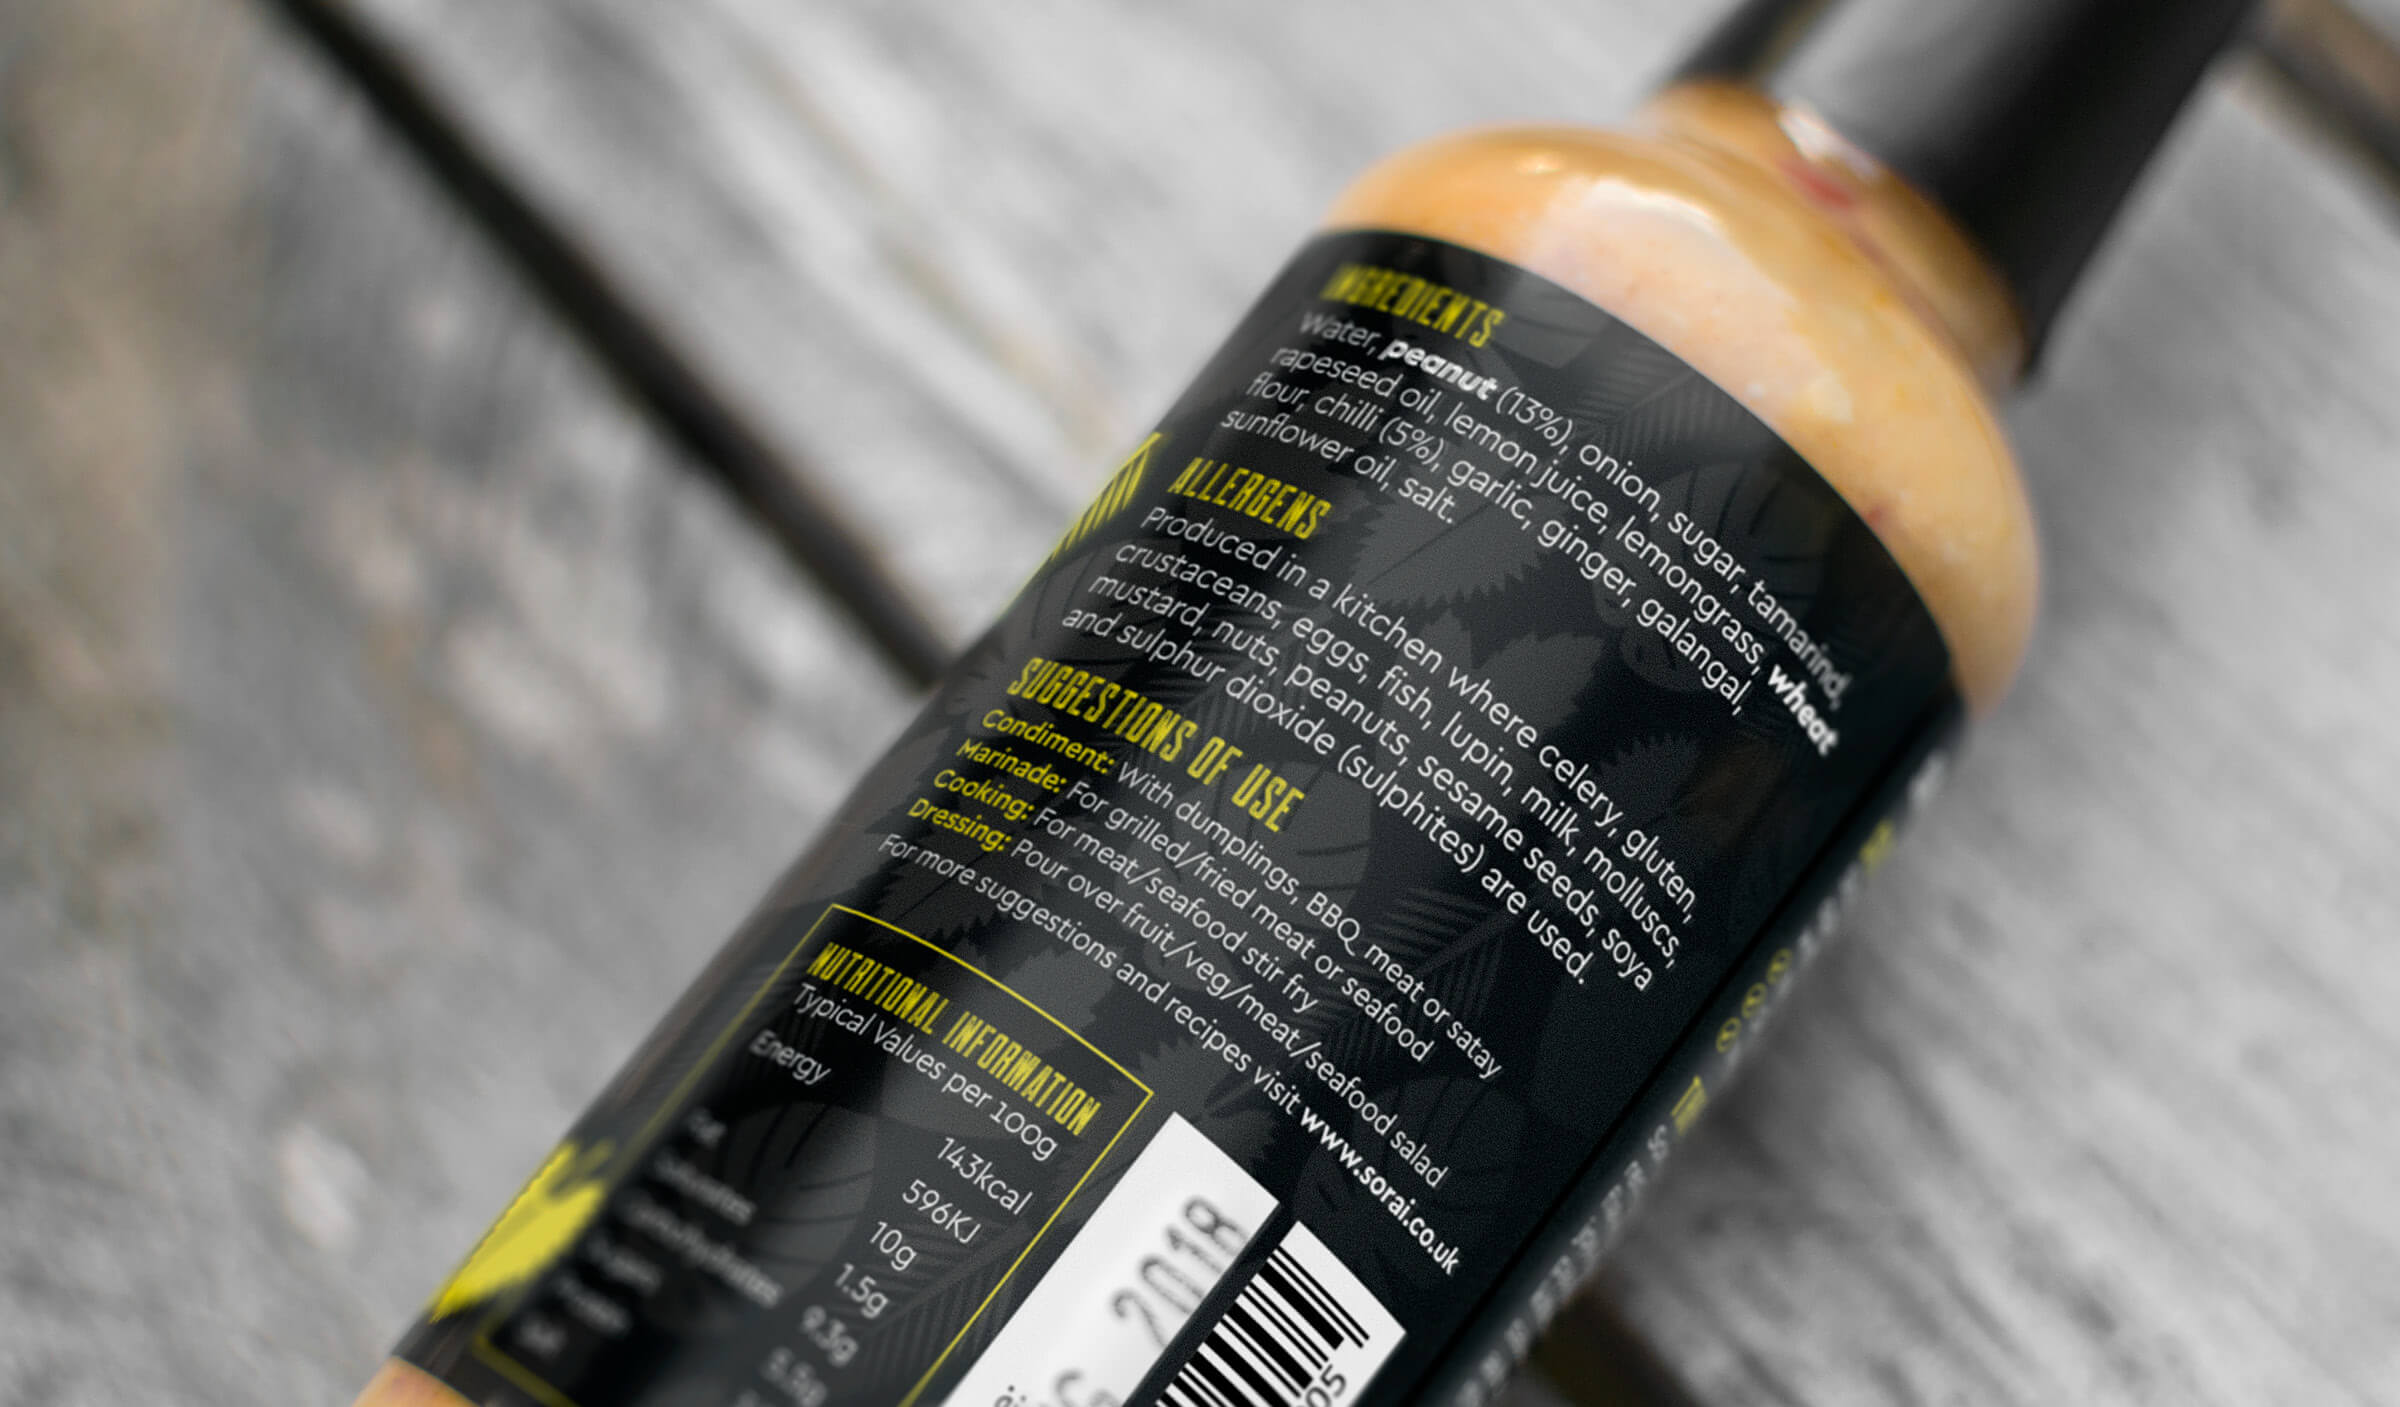 Hot sauce packaging label reverse